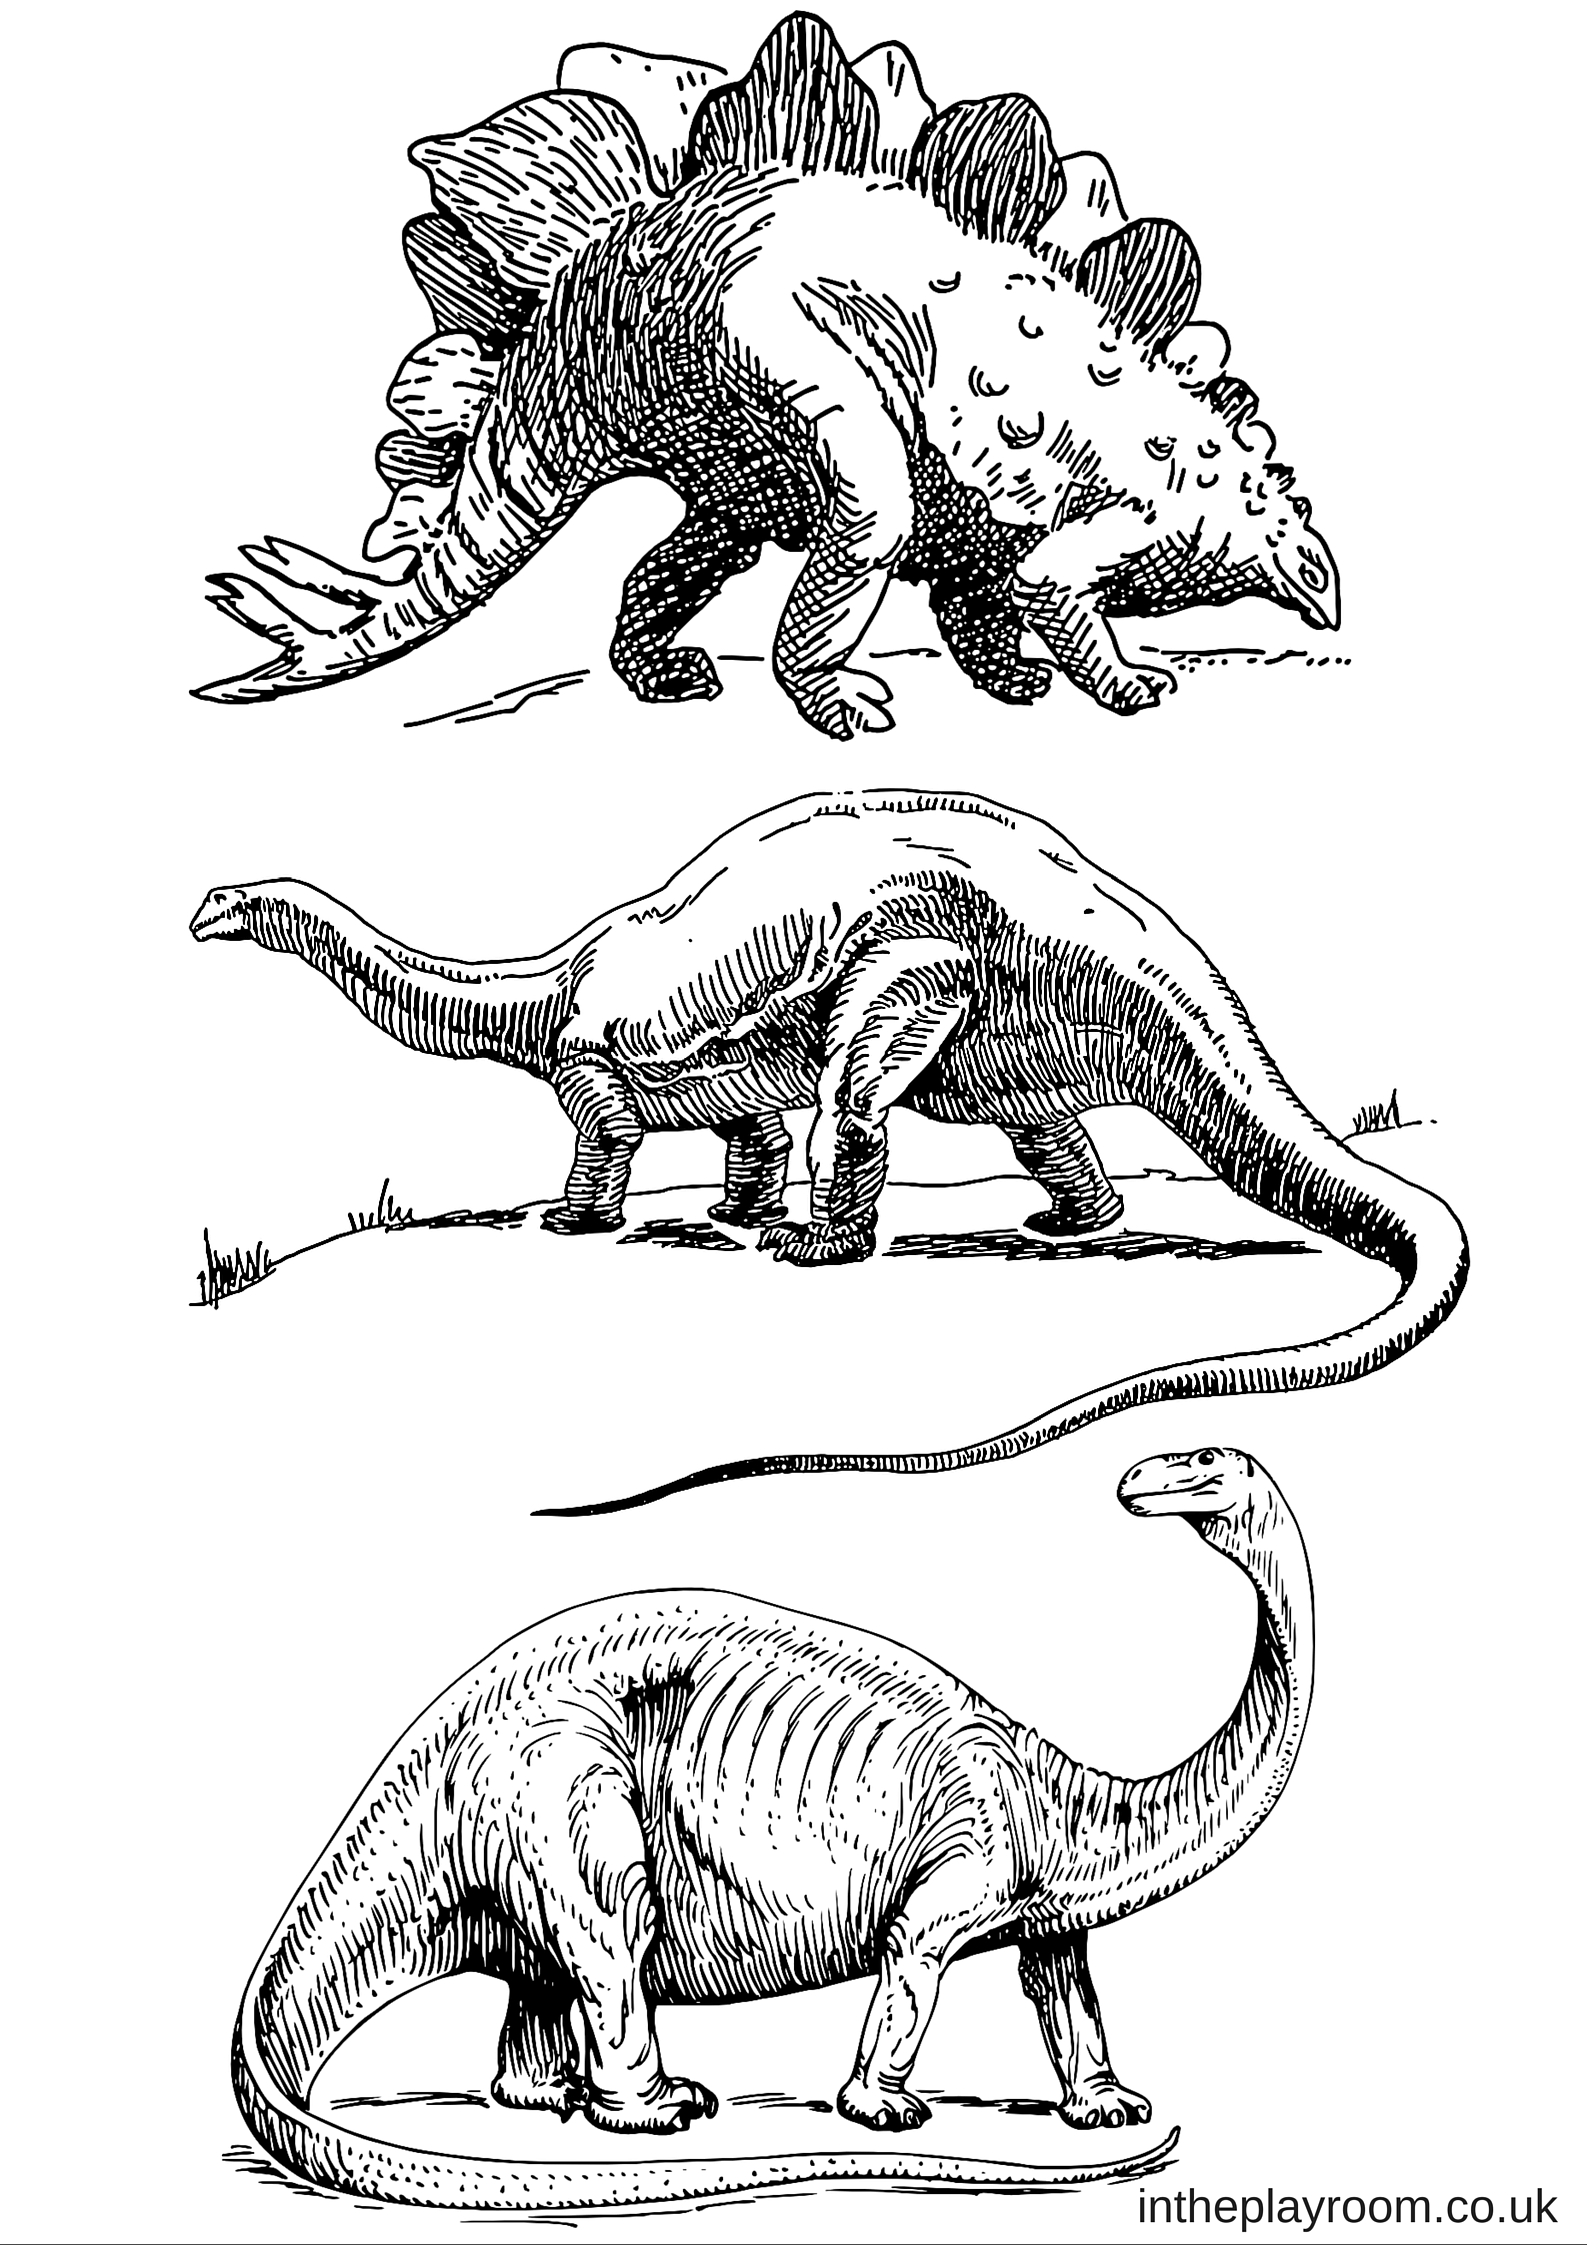 dino coloring page free coloring pages printable pictures to color kids coloring page dino